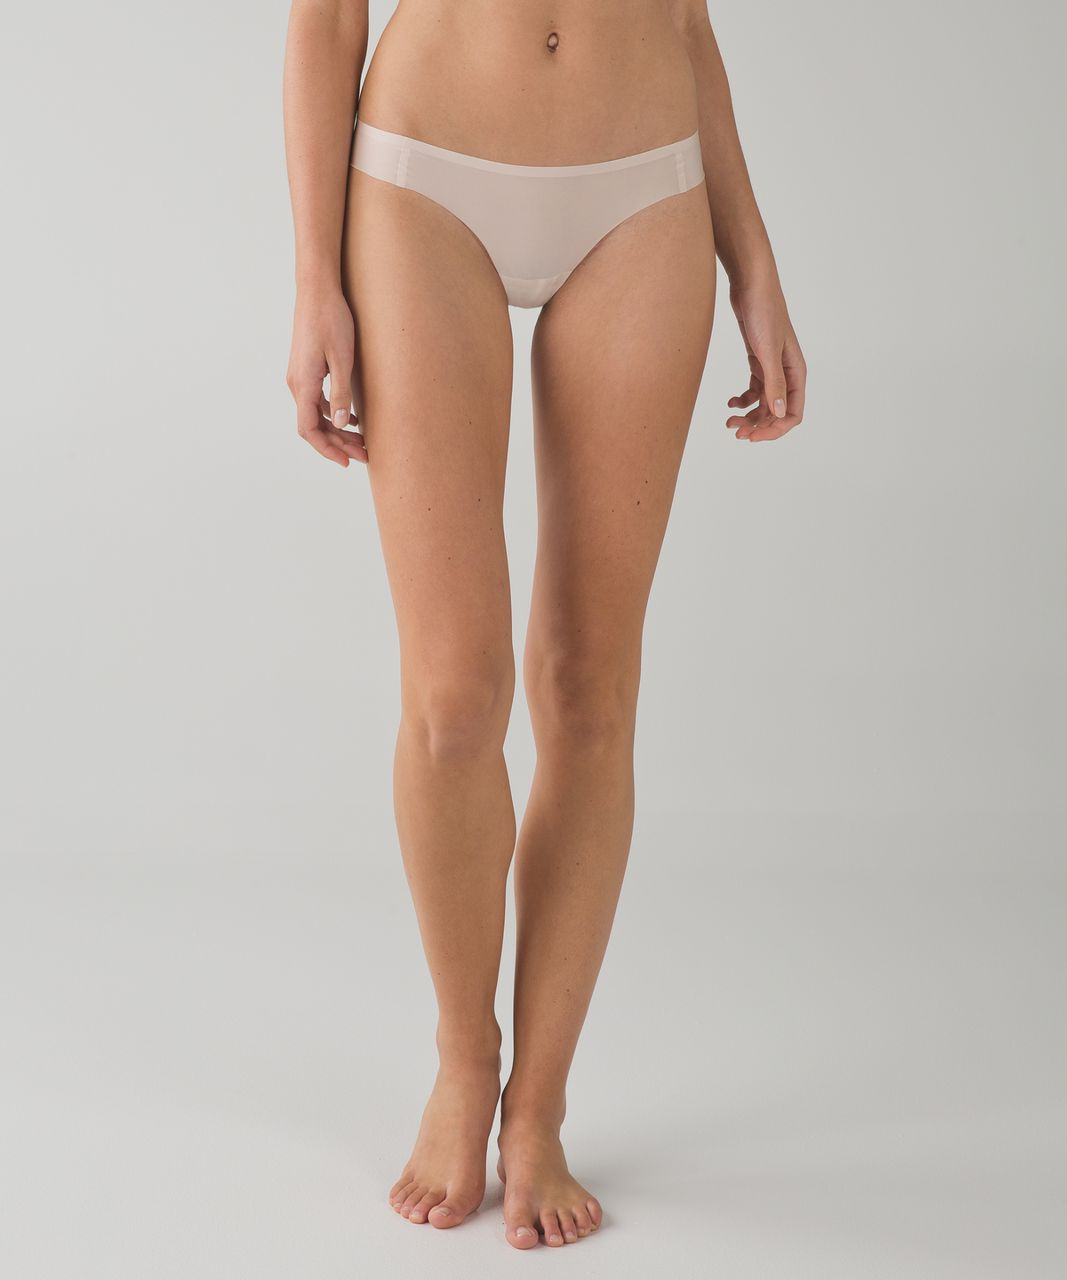 Lululemon Light As Air Thong - Nudie